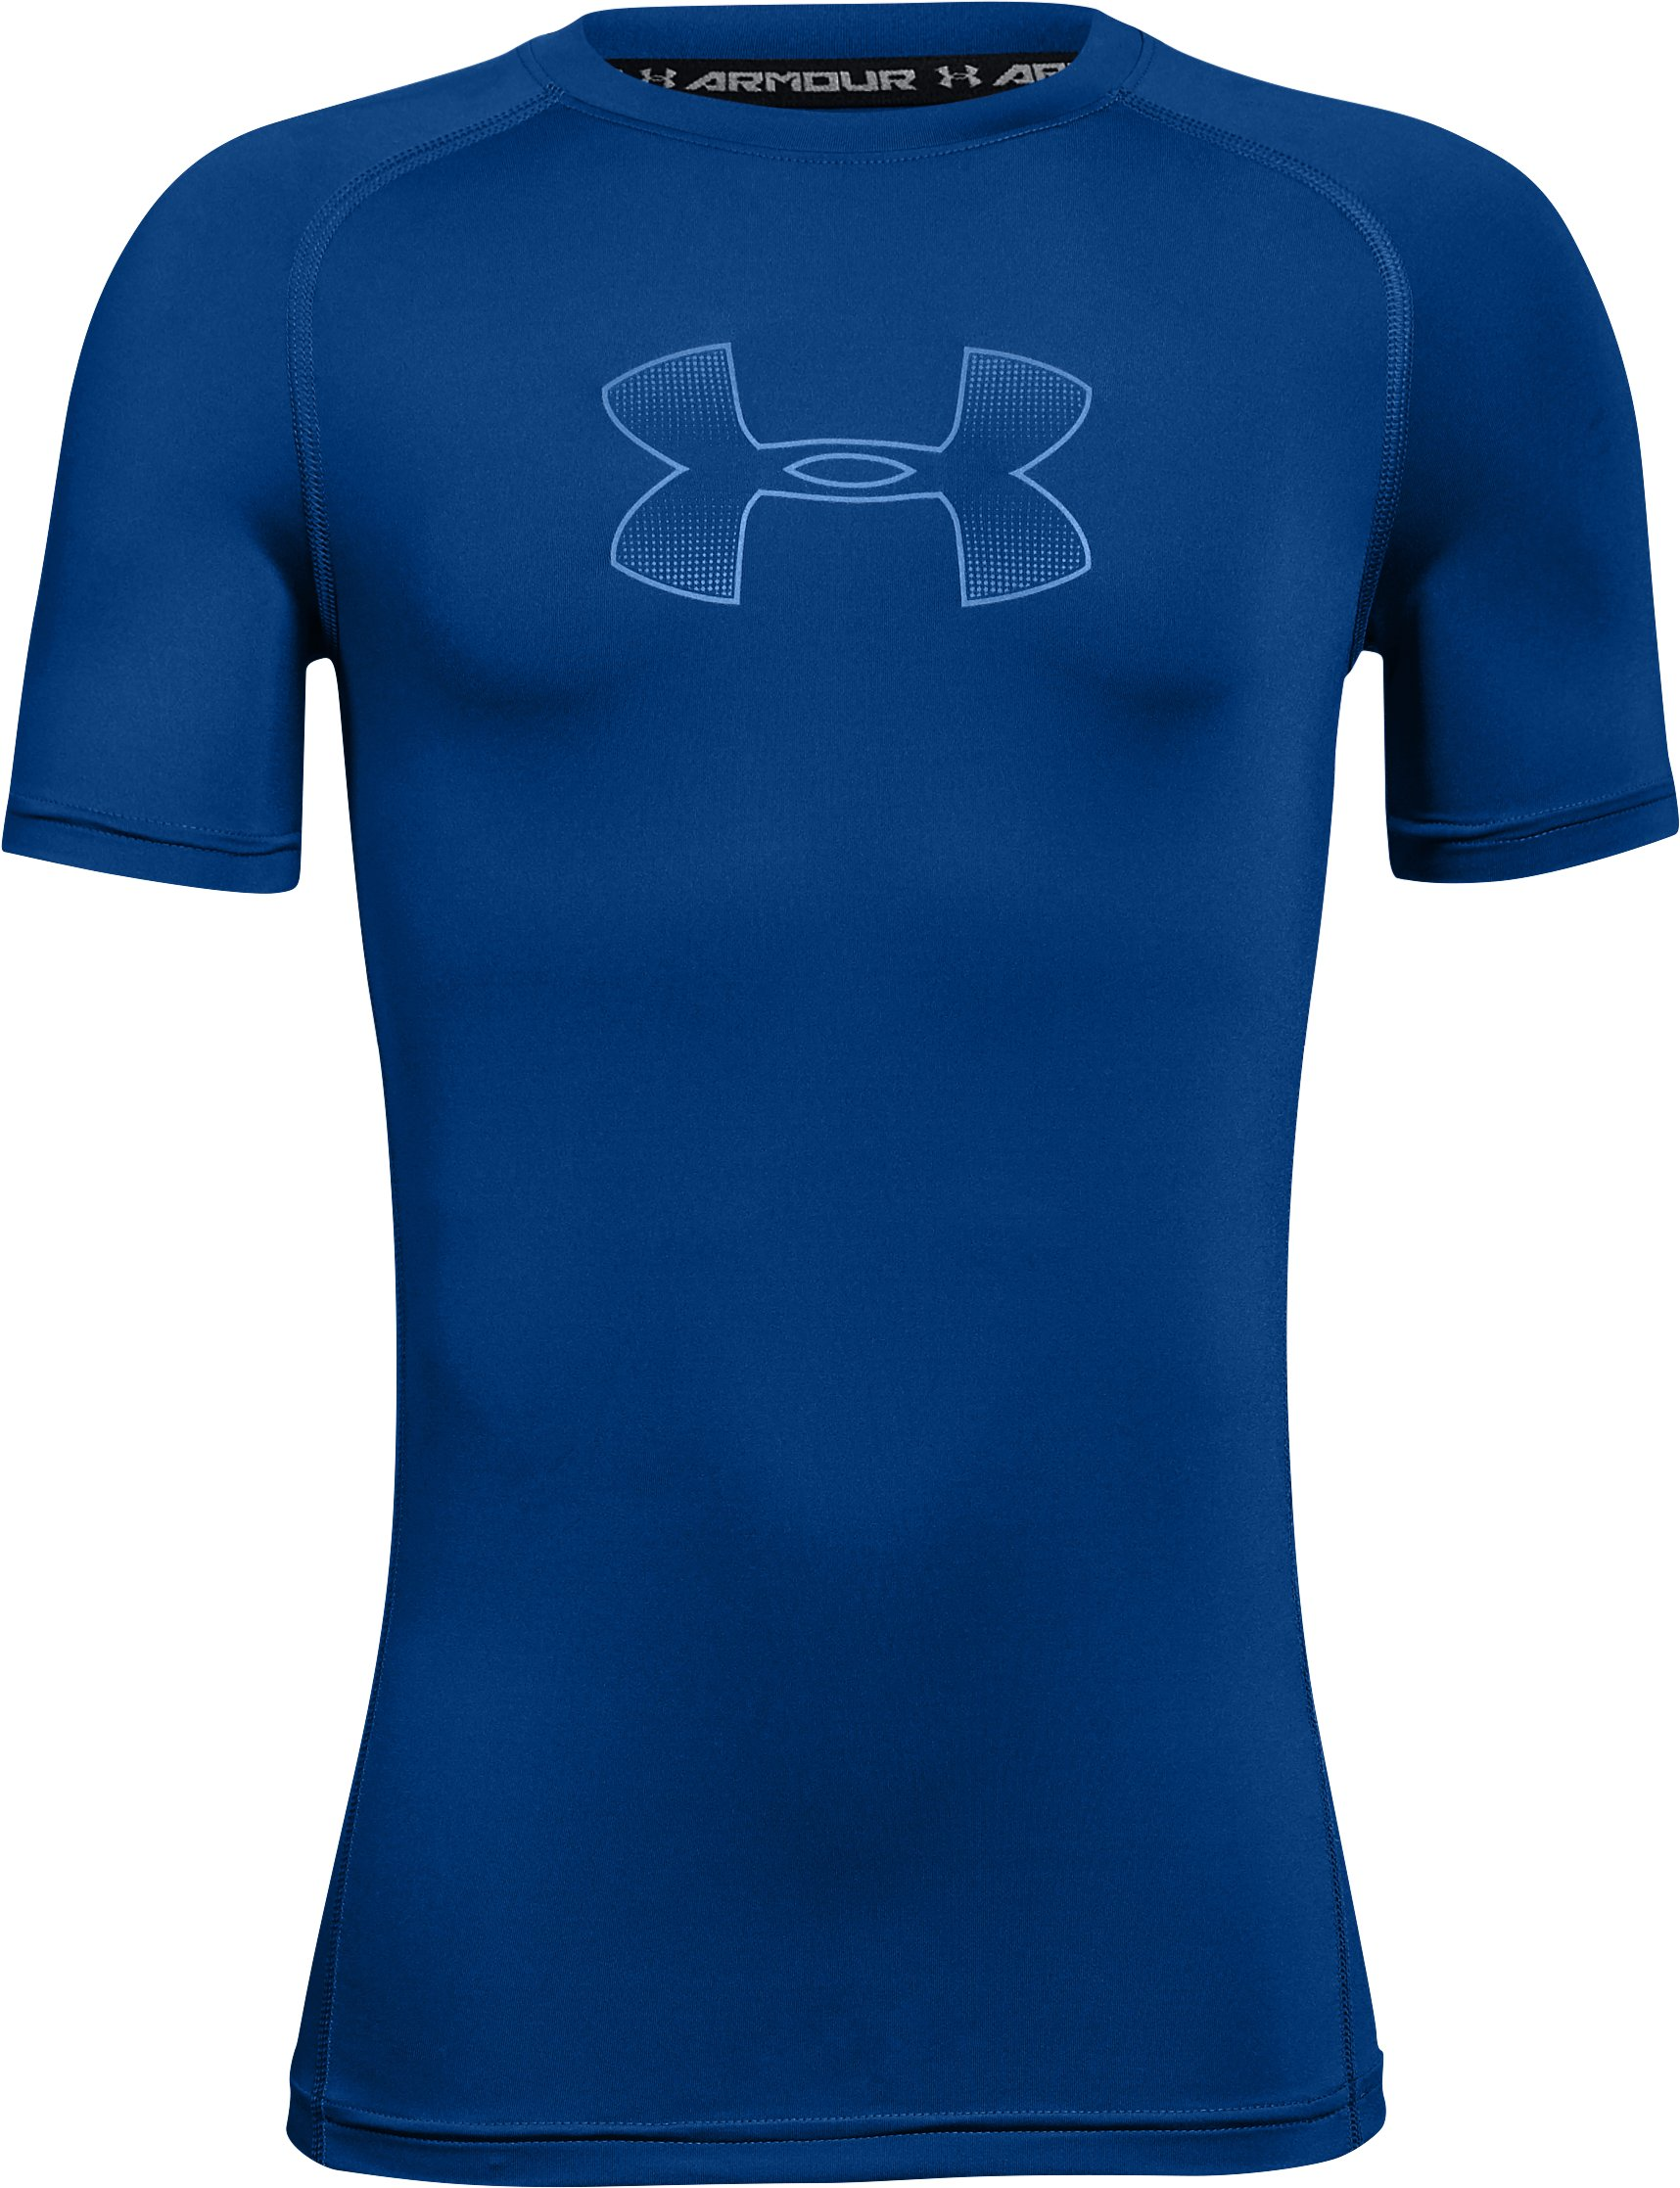 Boys' HeatGear® Armour Short Sleeve, Royal